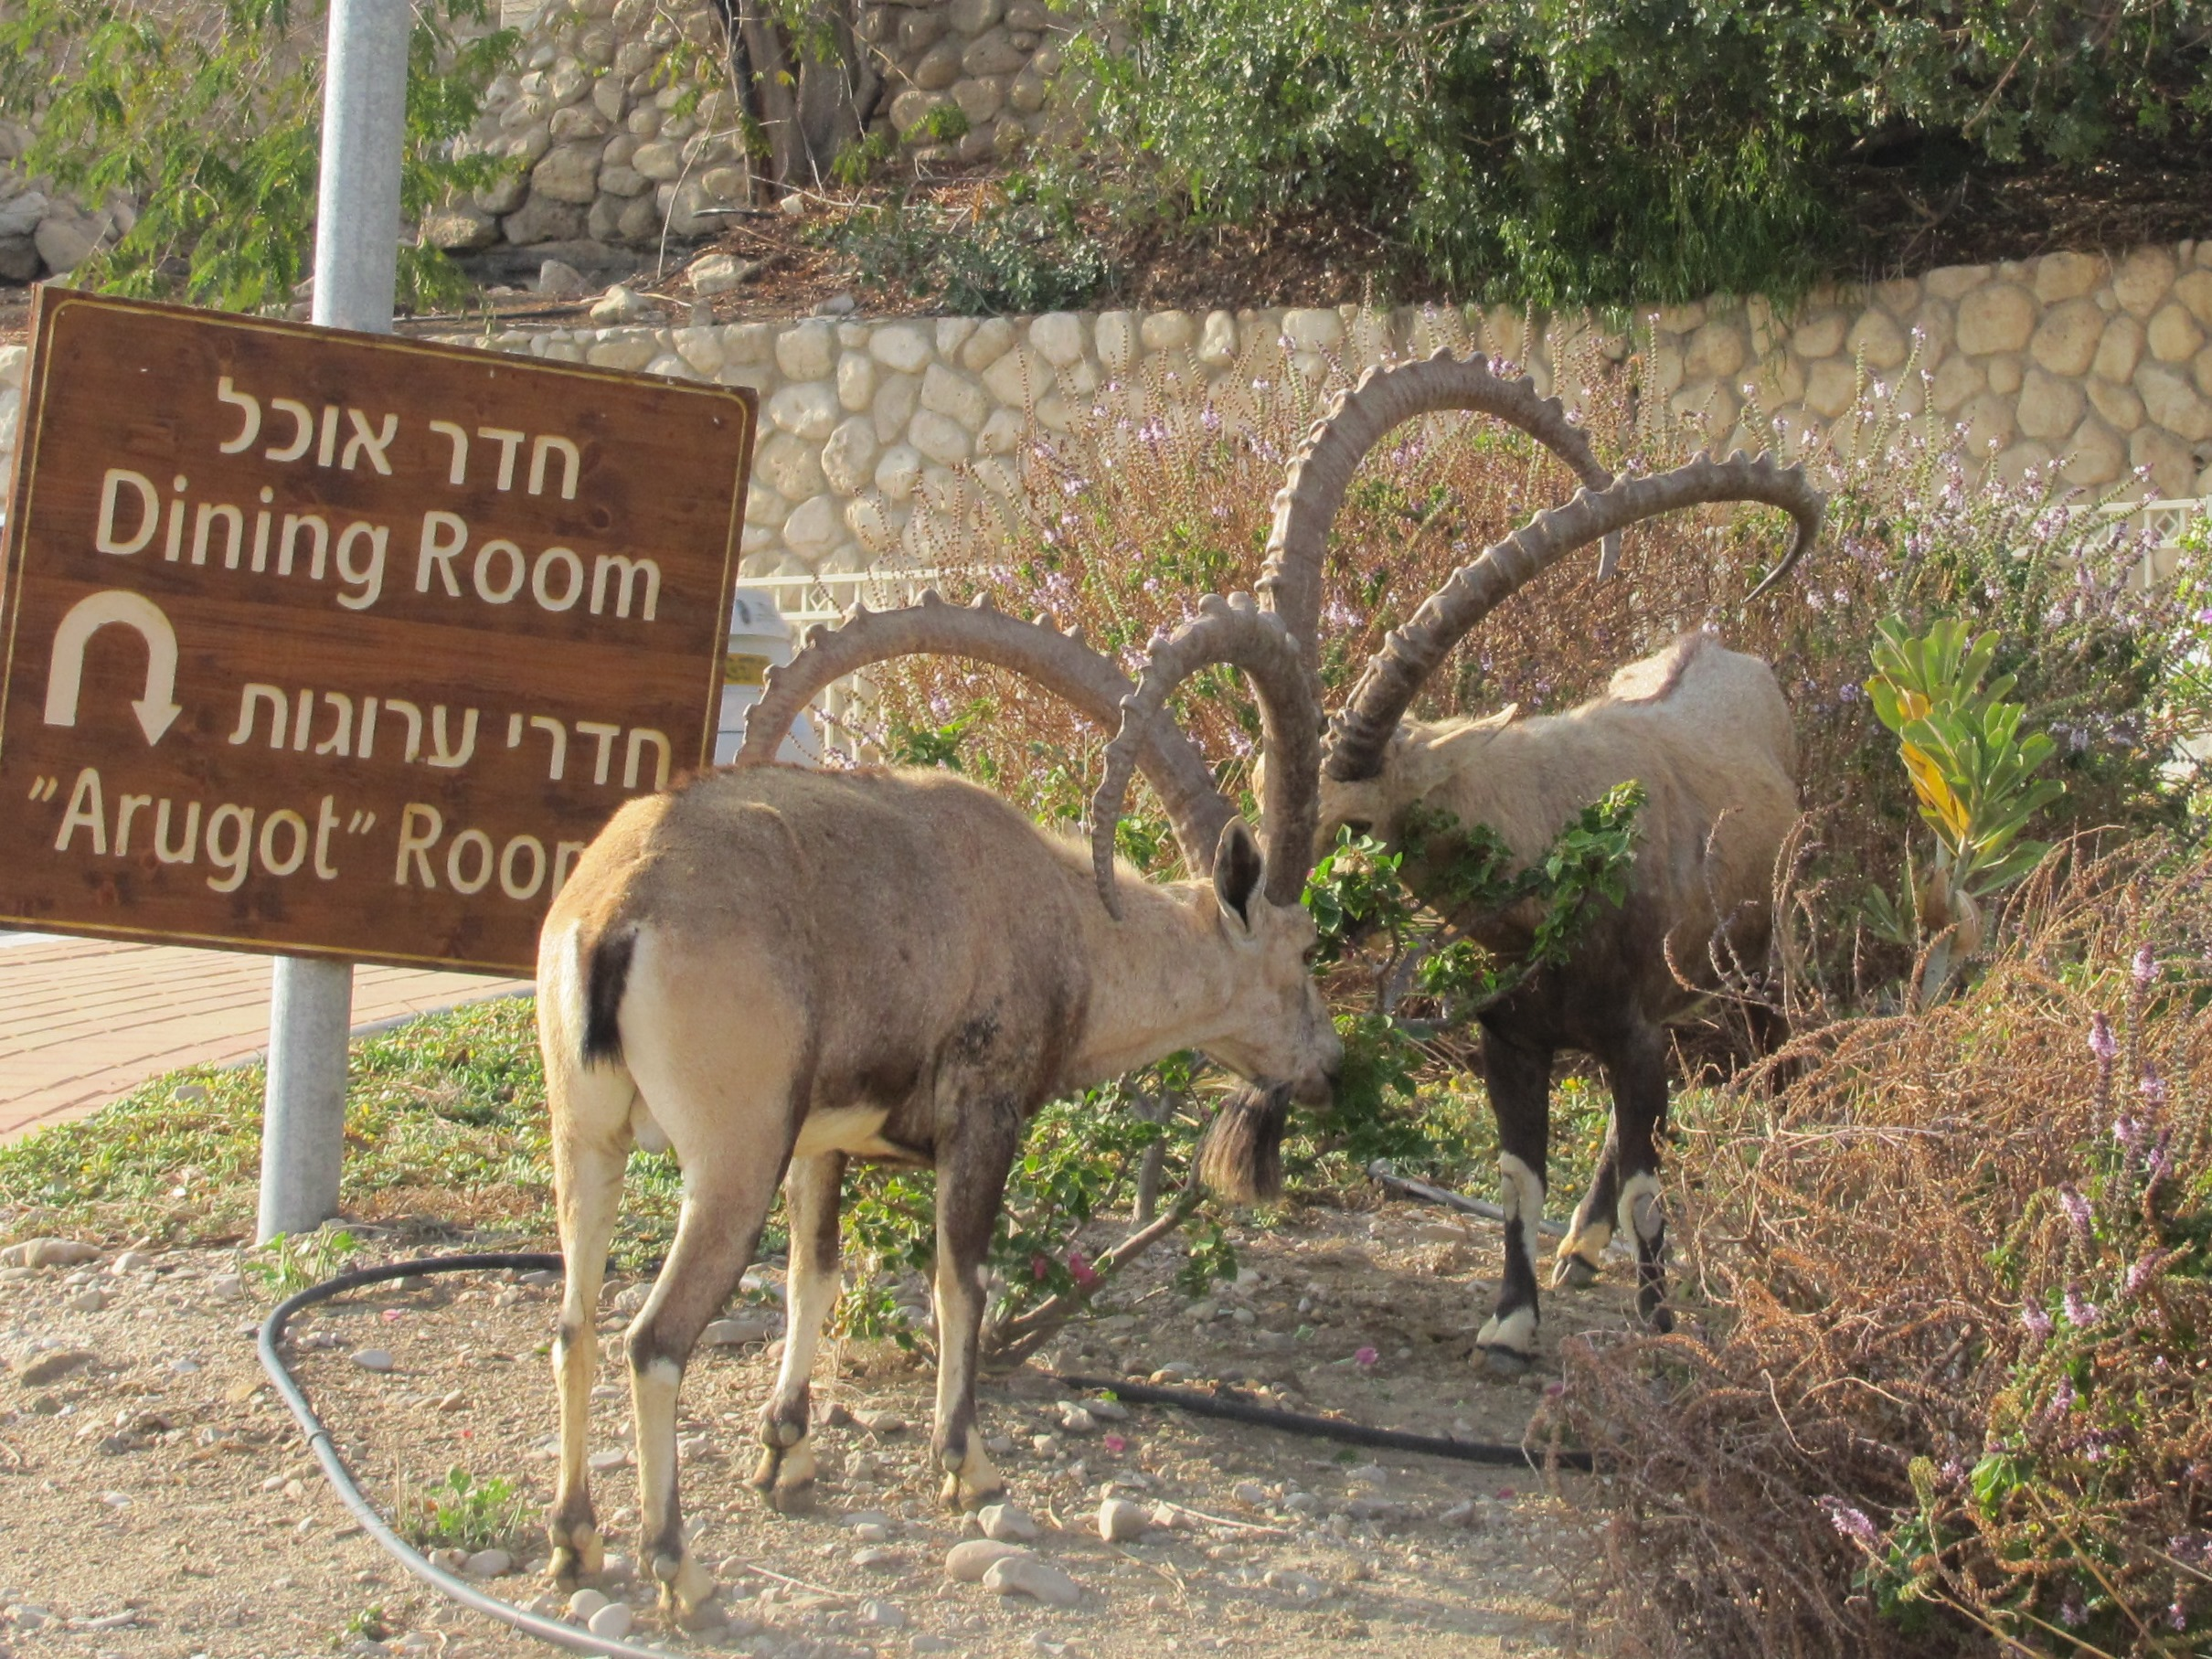 Ibex at Ein Gedi resort on the shores of the Dead Sea in Israel